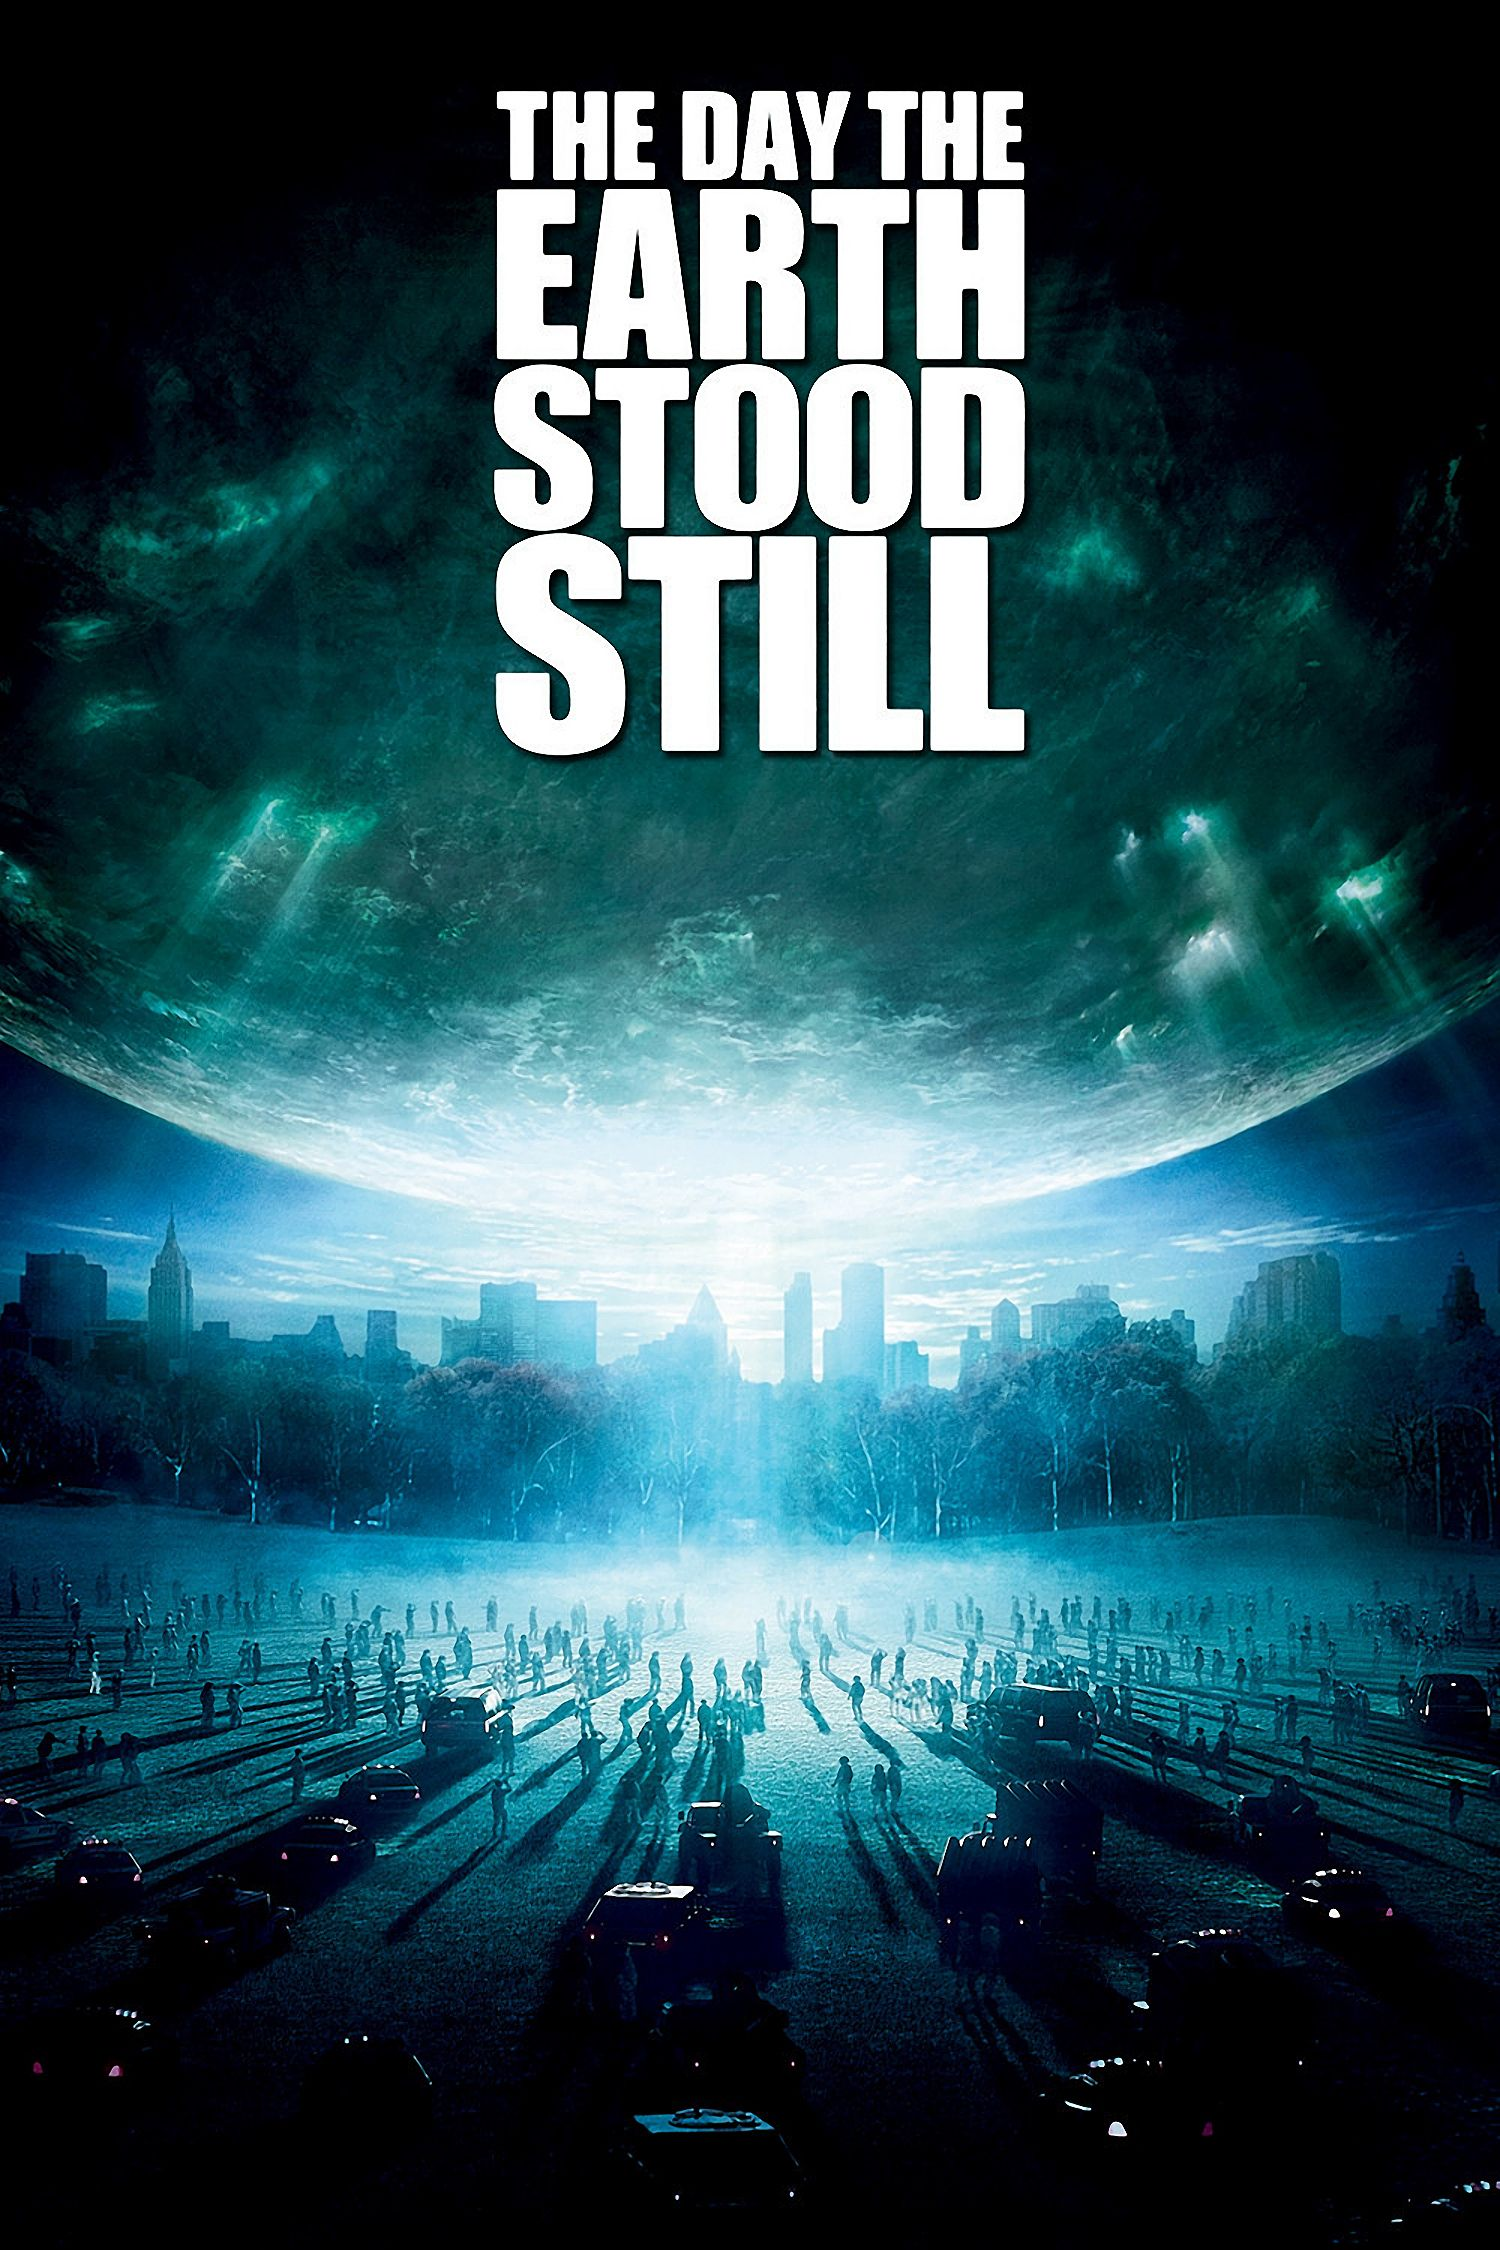 The Day The Earth Stood Still 2008 Full Movies Online Free Streaming Movies Sci Fi Films